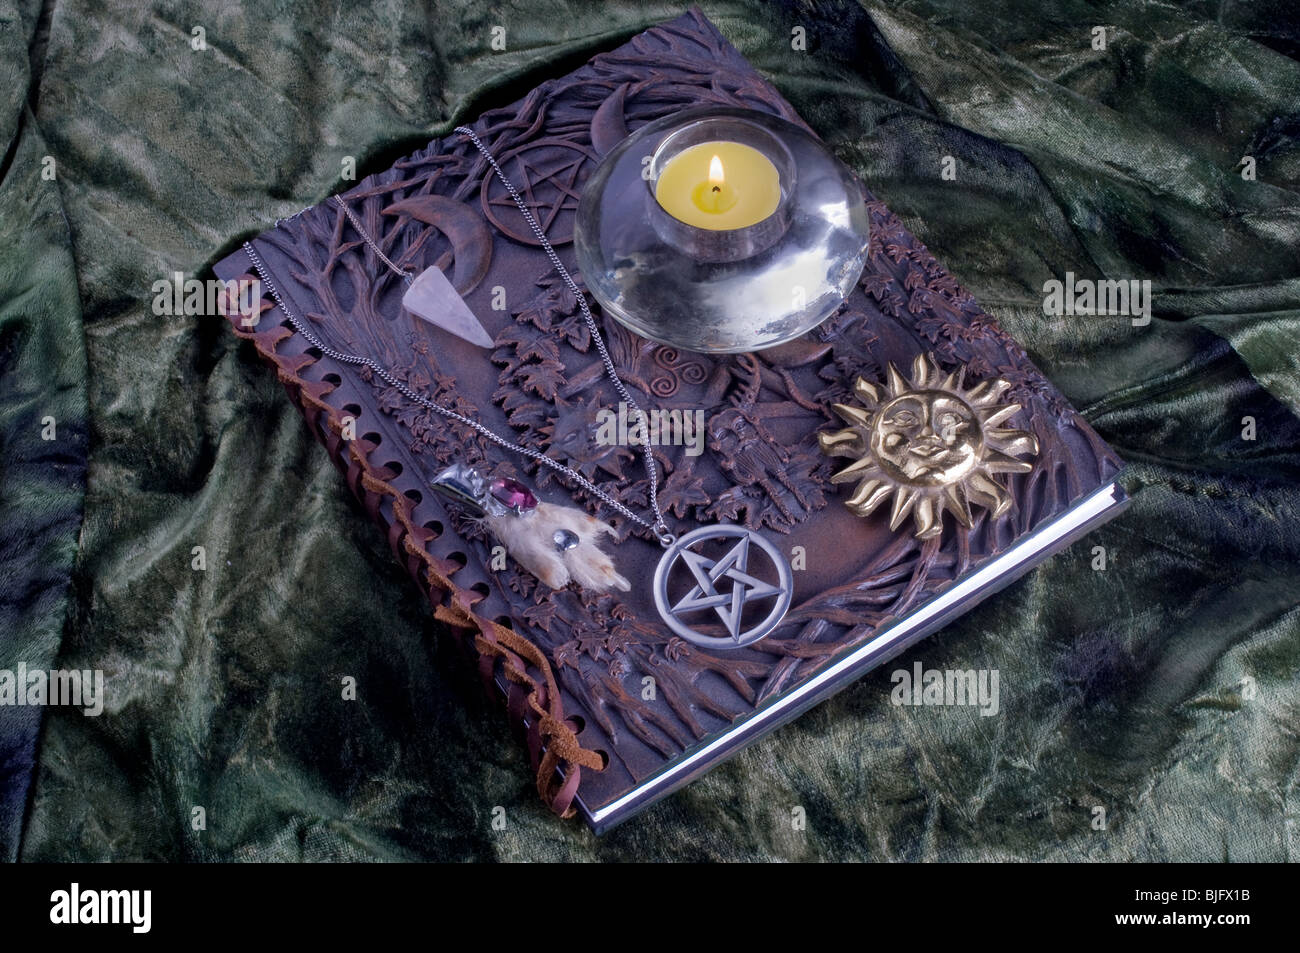 Witchcraft Tools - John Gollop Stock Photo: 28623879 - Alamy